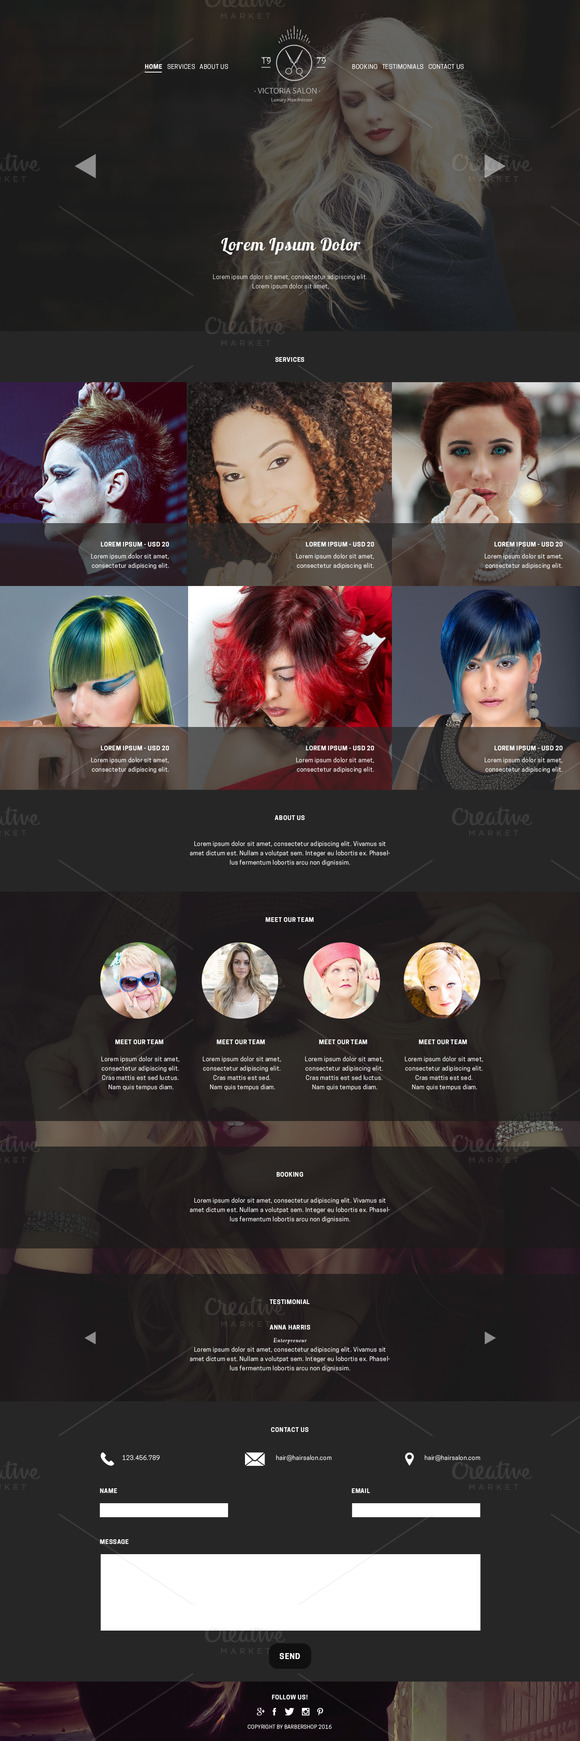 Hair Salon PSD Website Template | Salons, Template and Website